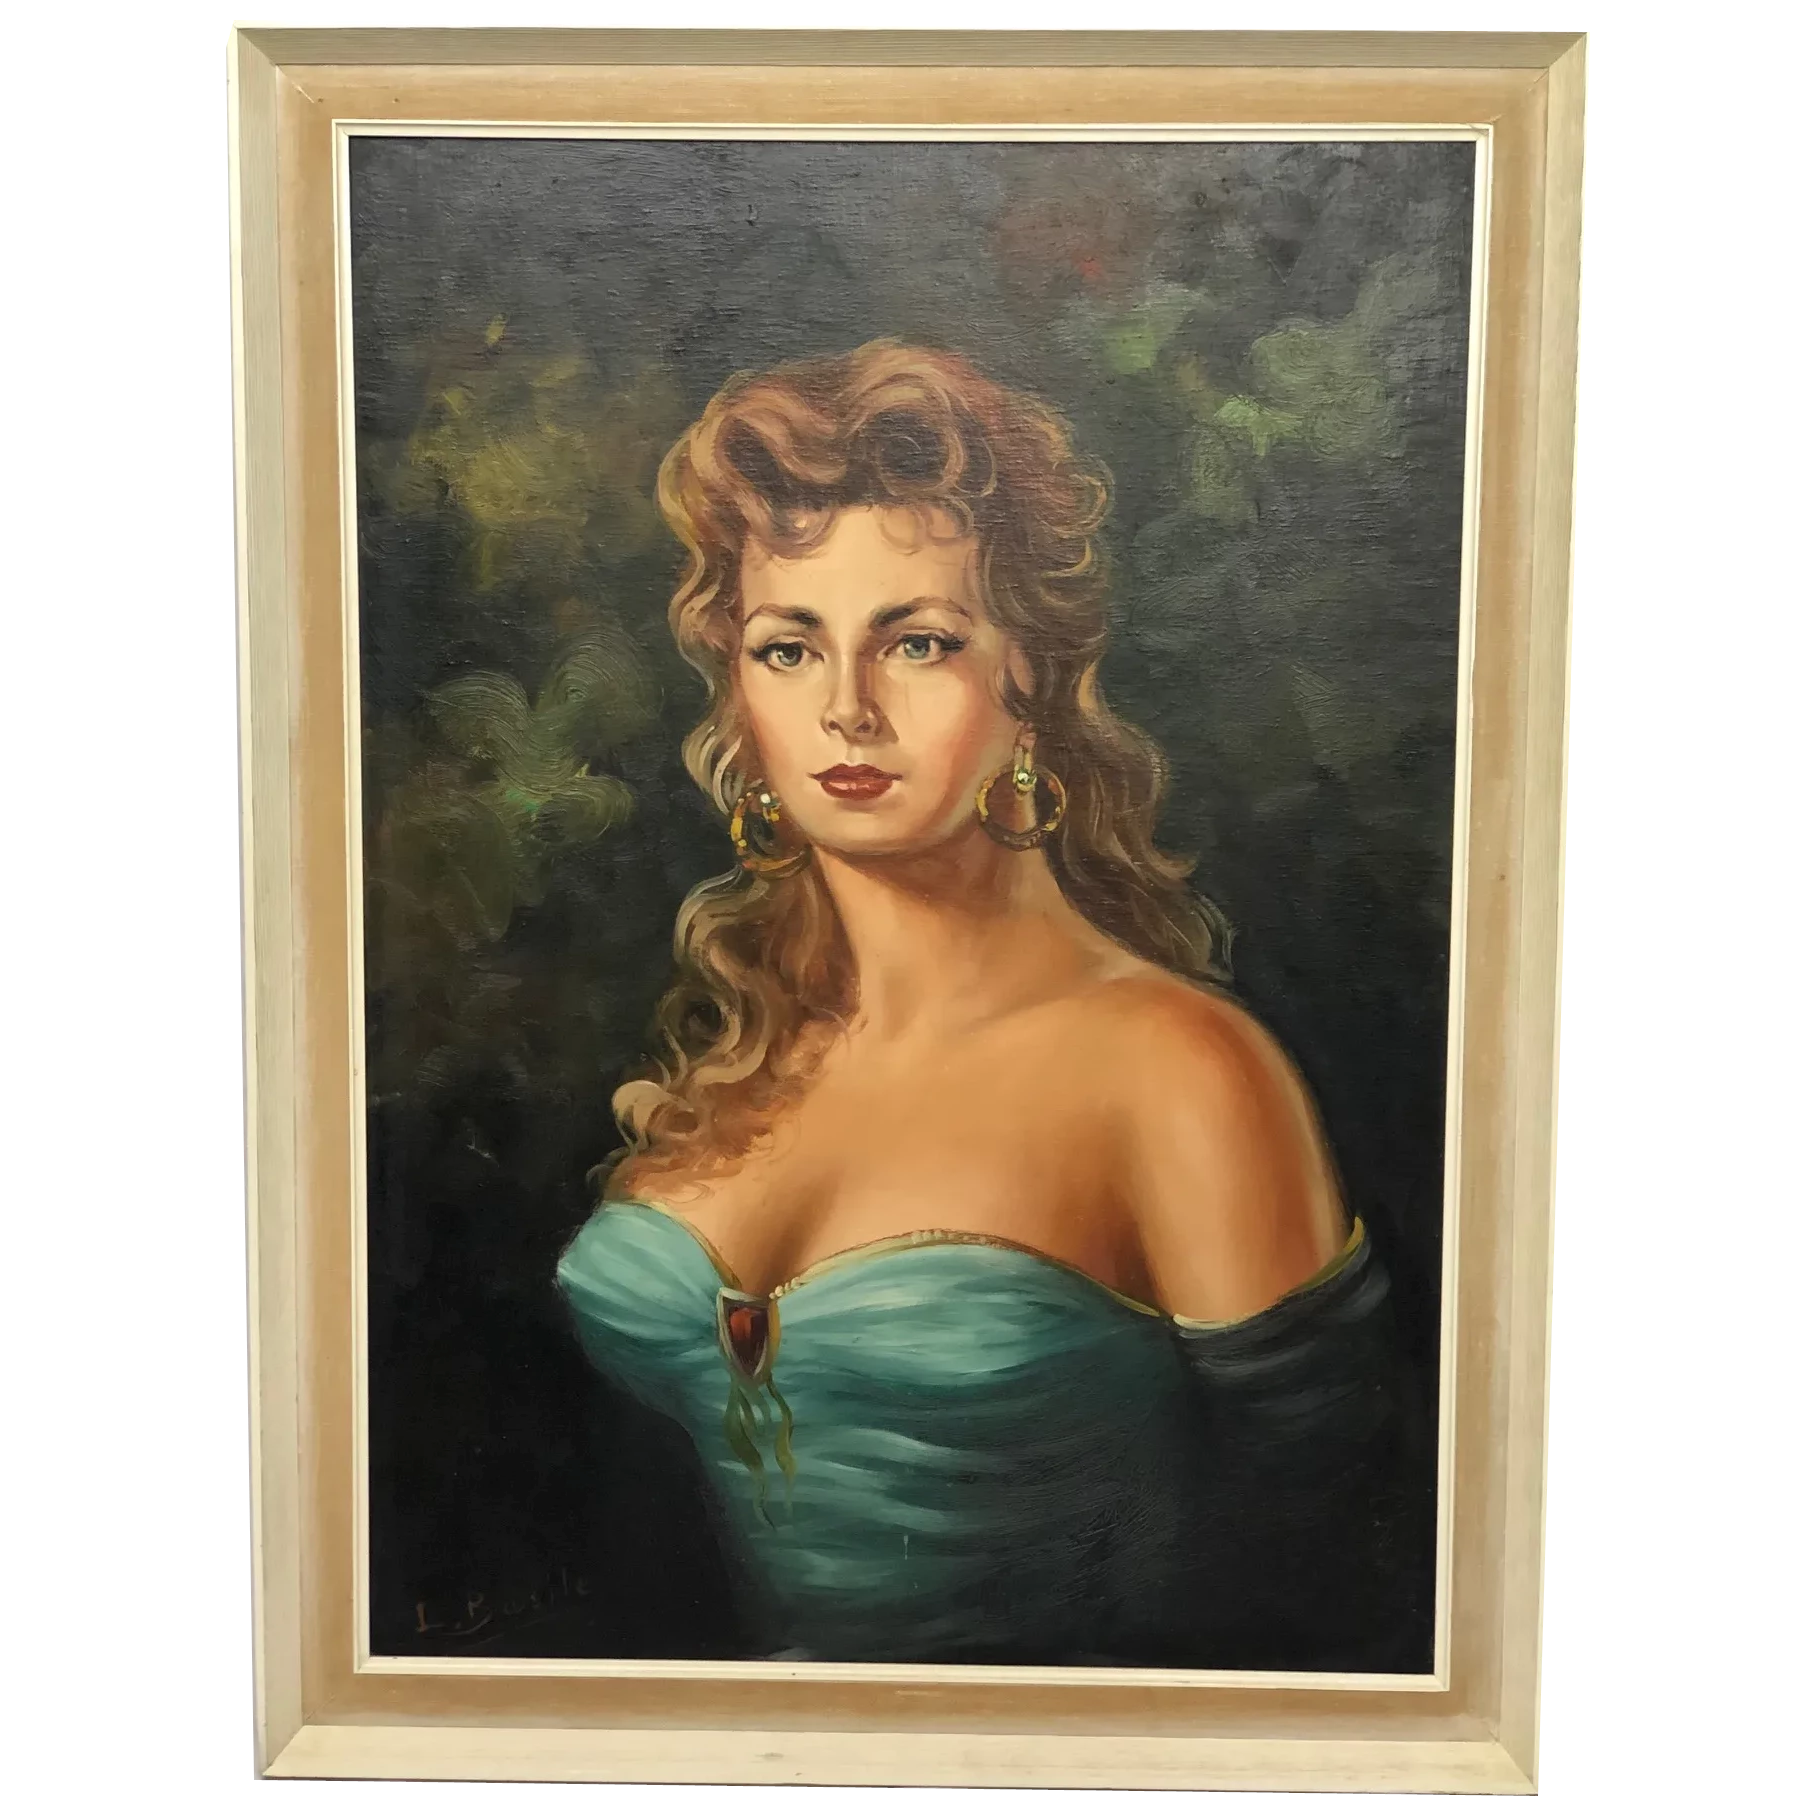 20th Century French Oil Painting Lady Turquoise Dress Portrait Signed L Basile